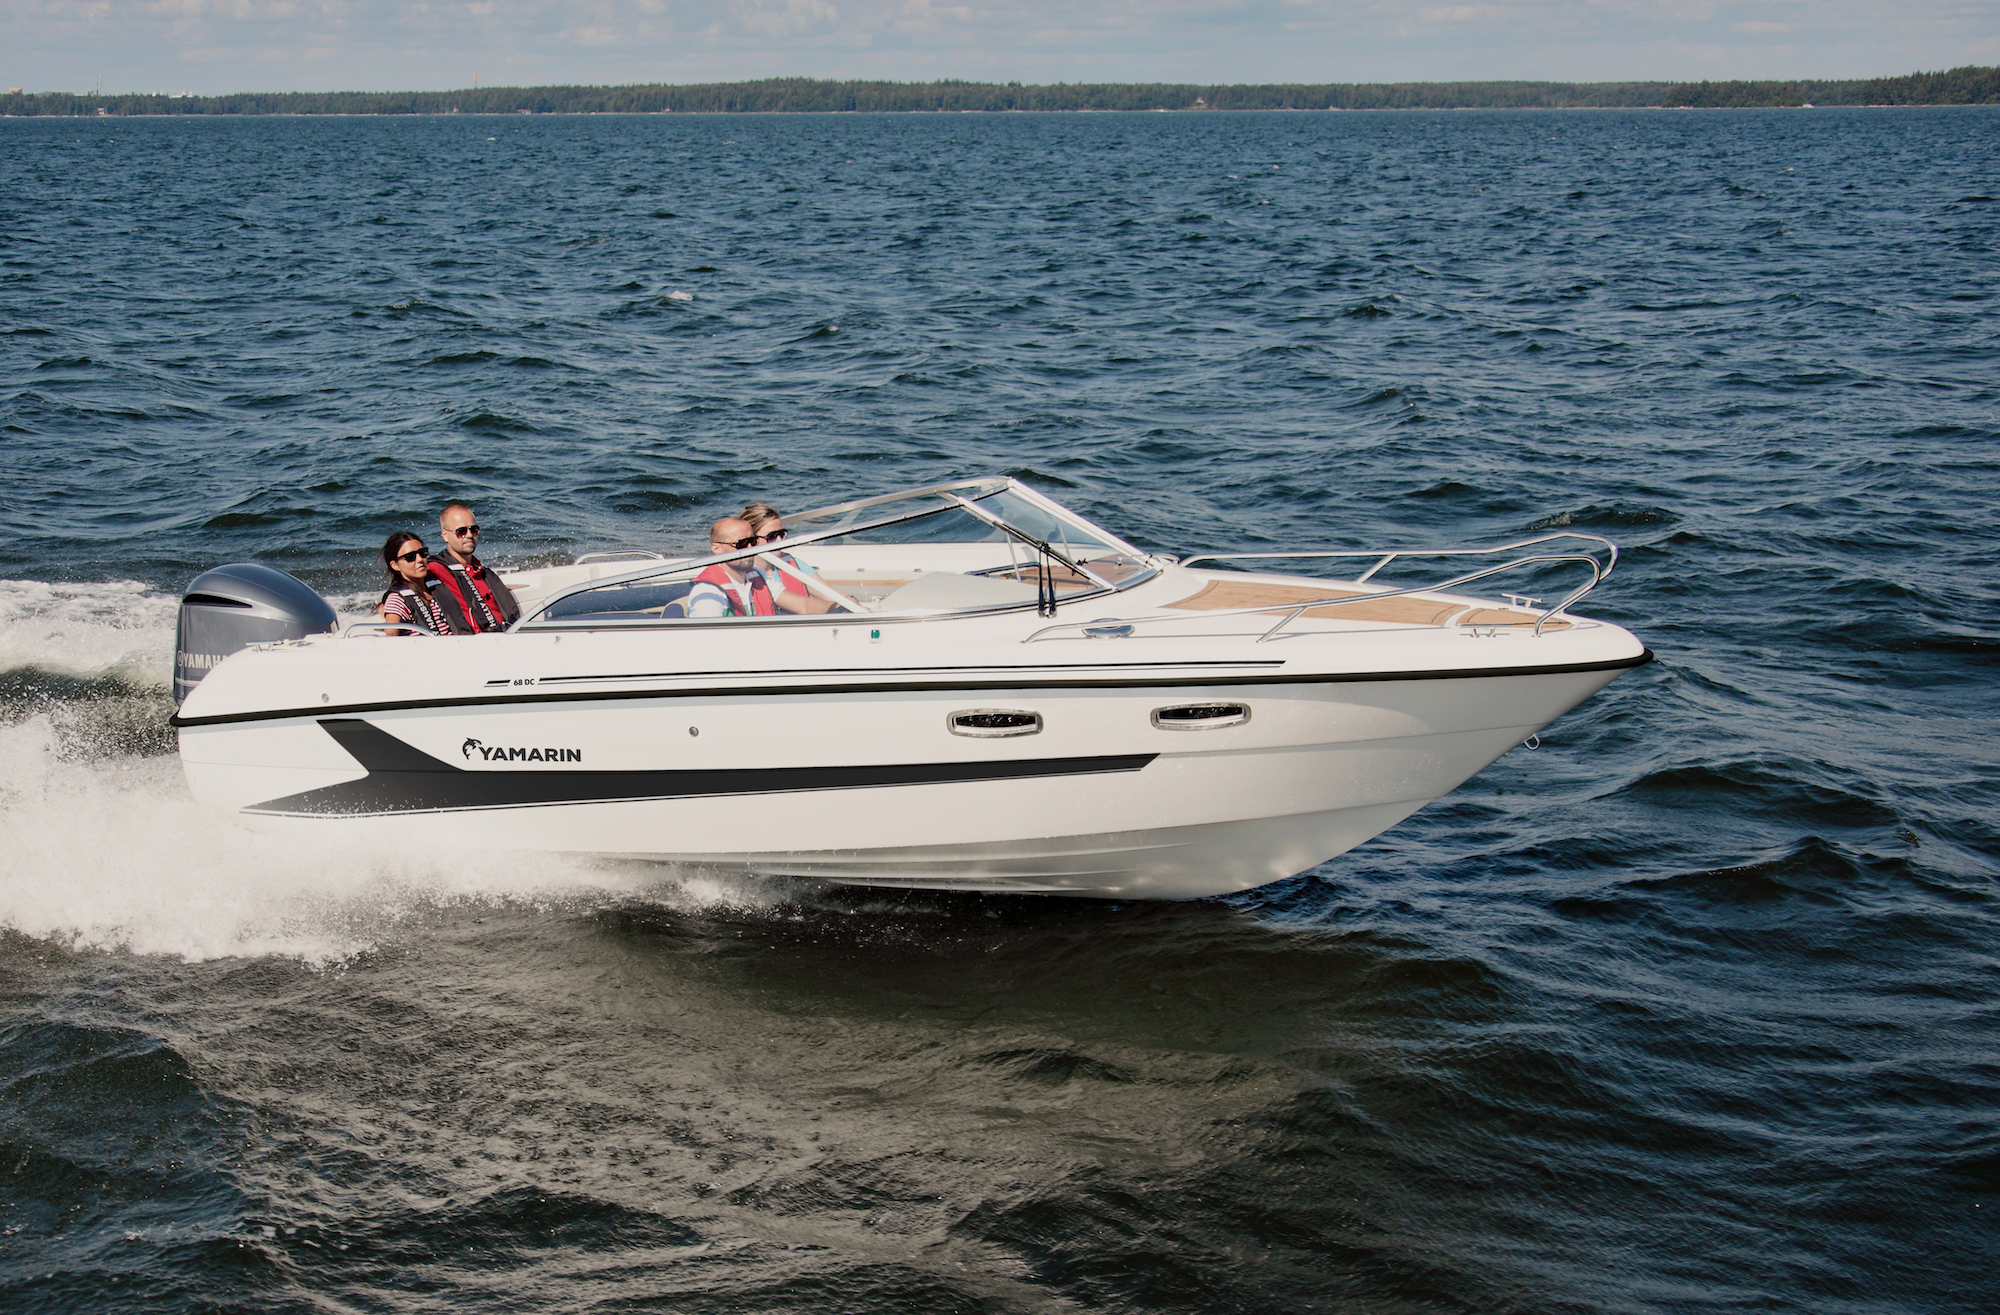 Yamarin 68 DC will be shown at the Düsseldorf boat show 2020